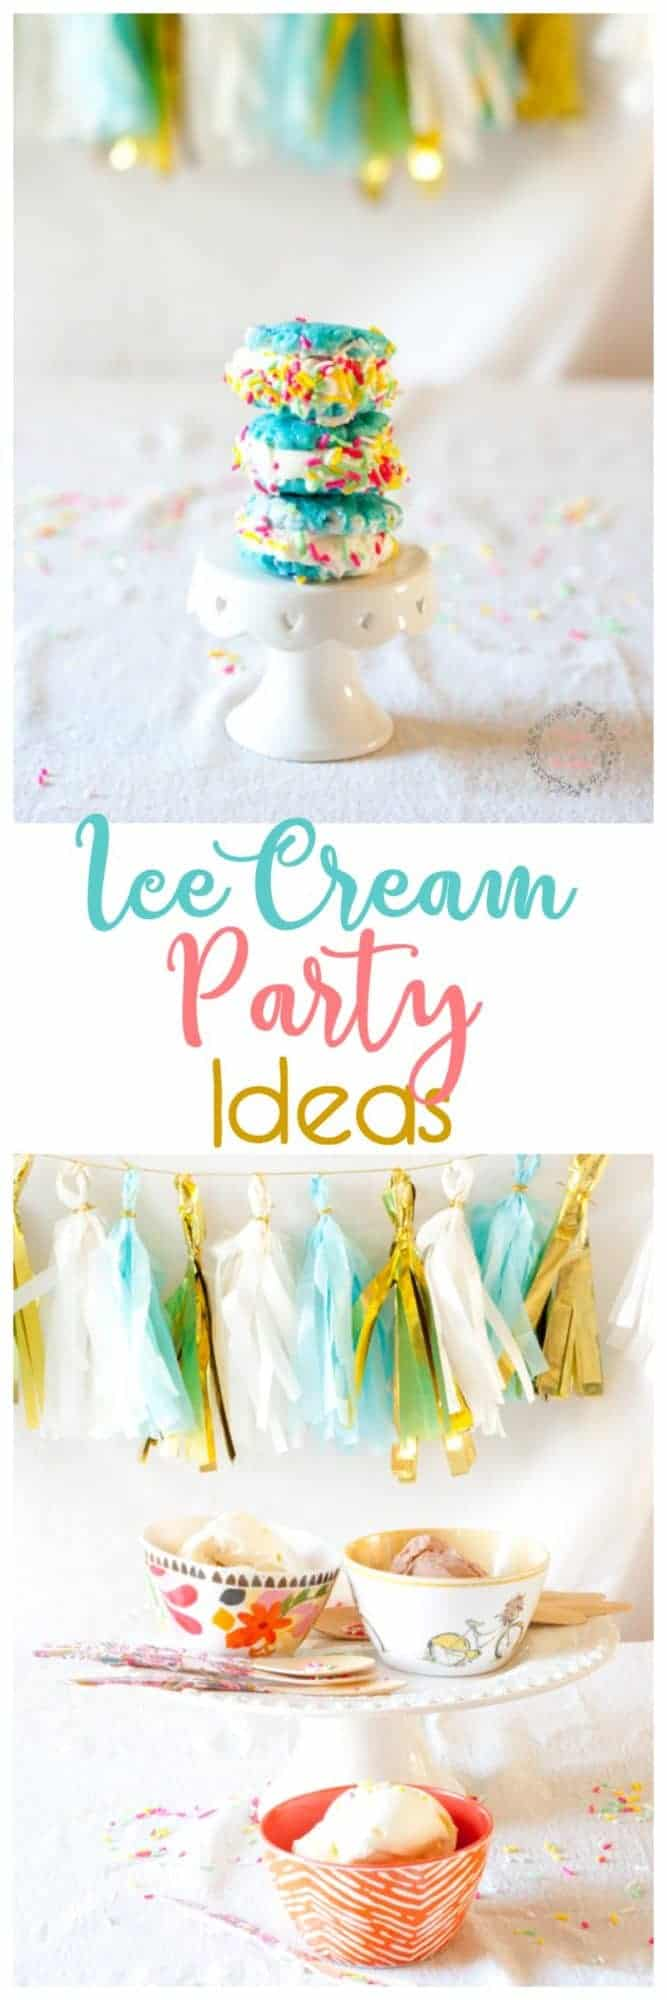 Sweet and Simple Ice Cream Party - Ideas for a Boho Shabby Chic Sprinkle filled extravaganza!